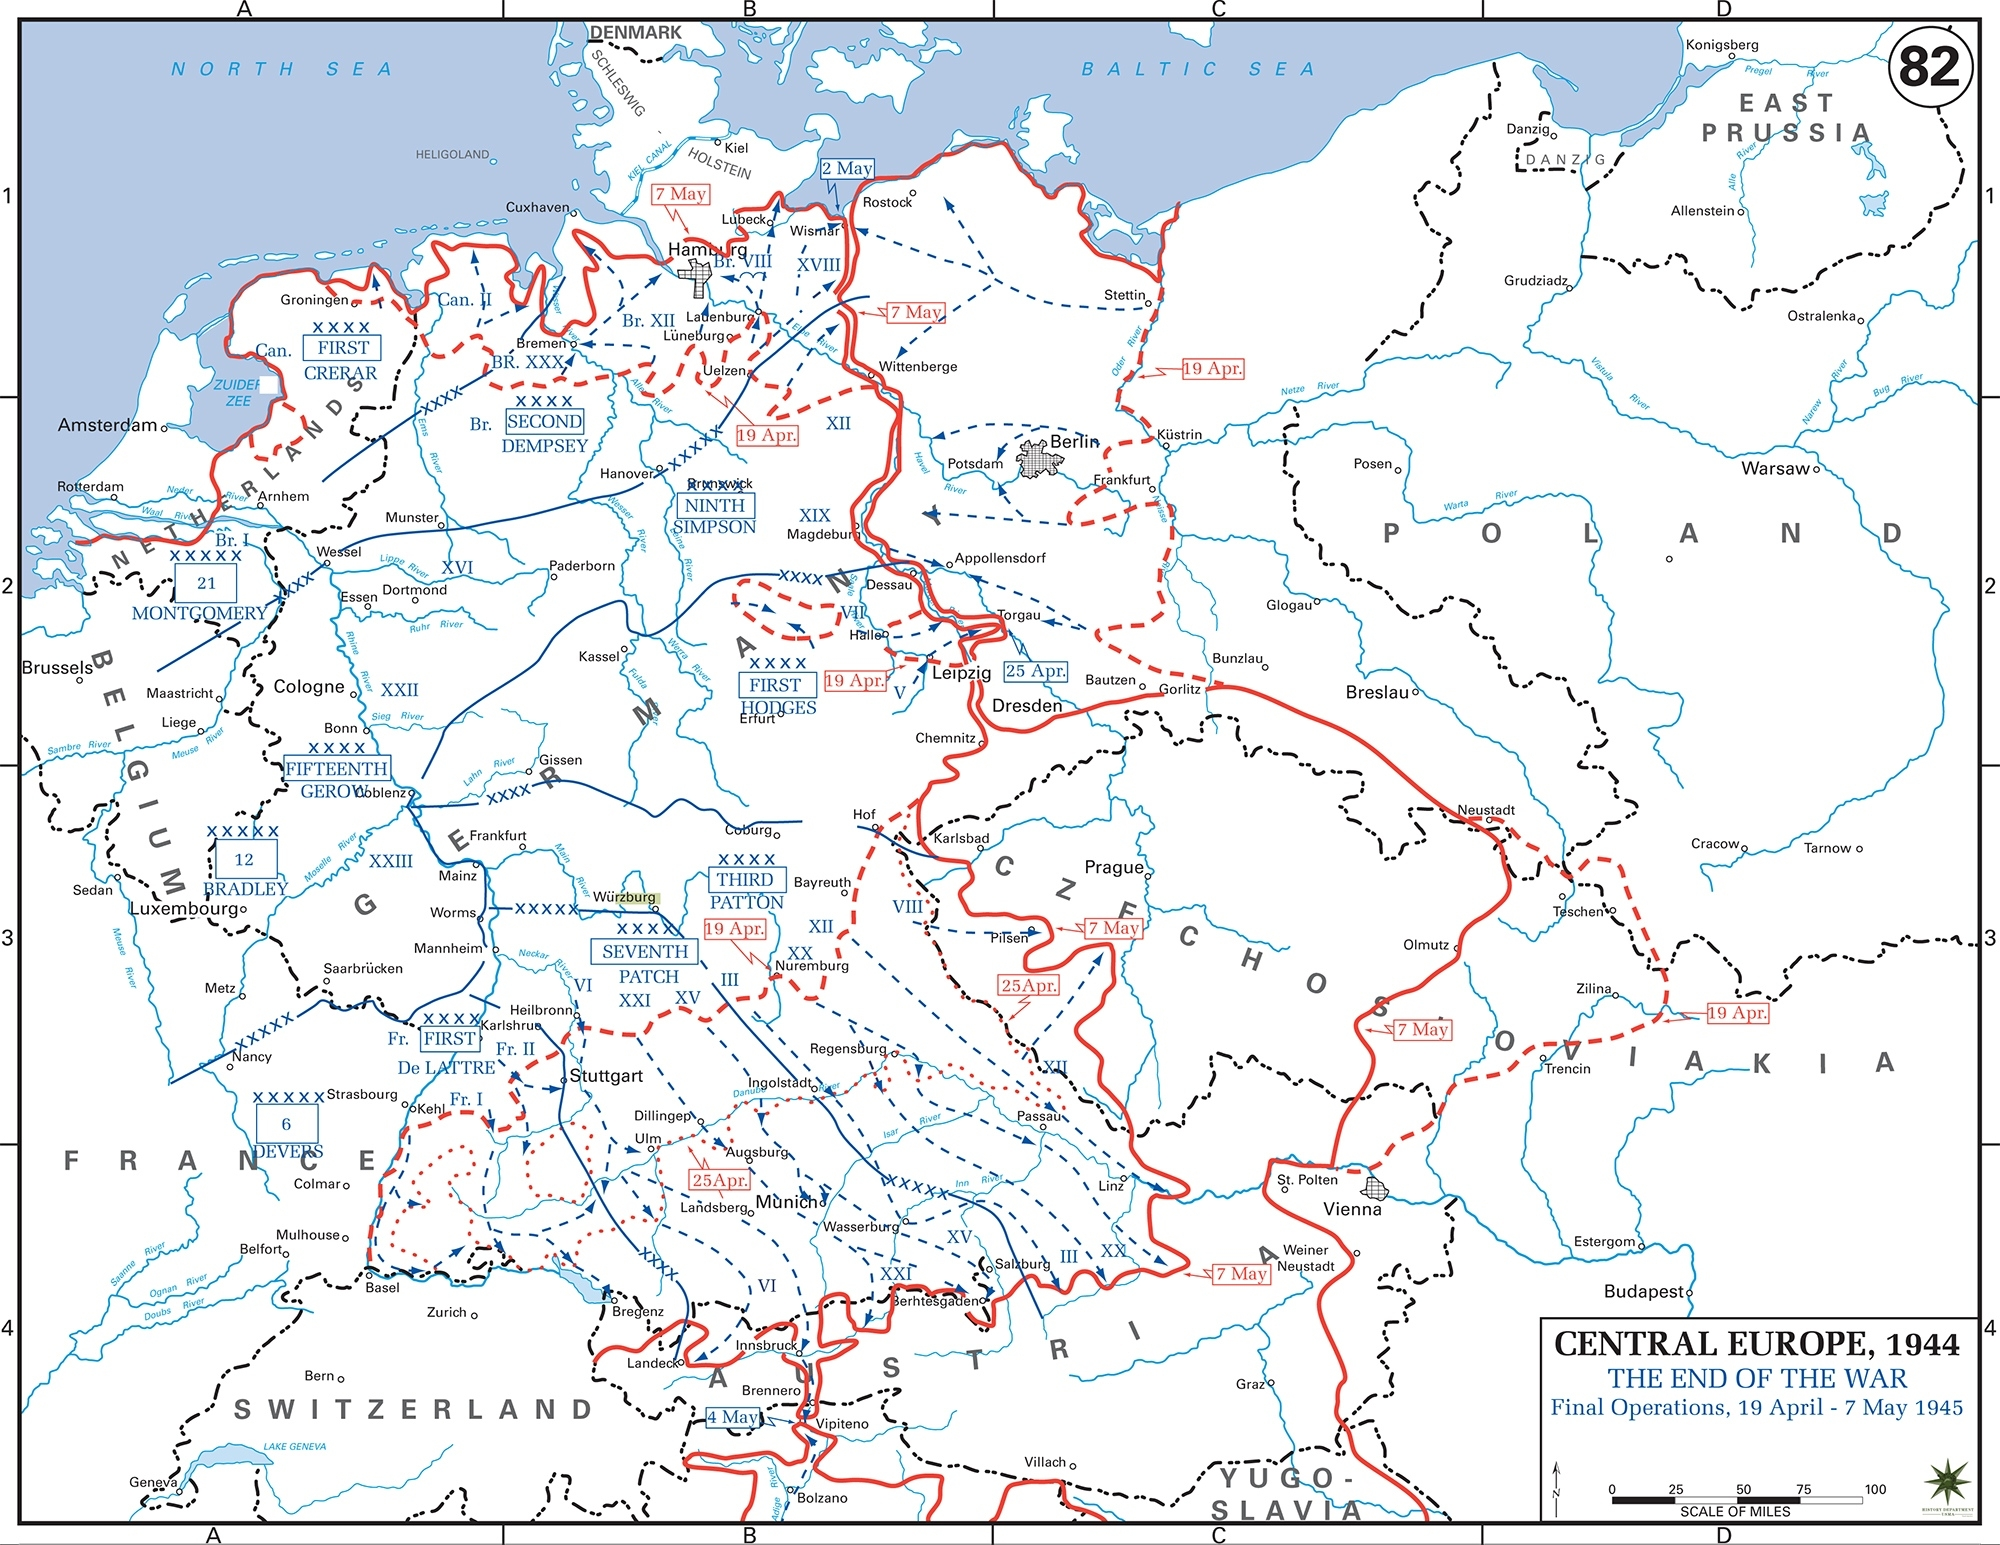 Map Of Wwii: Germany May 1945 within Germany Map Of Ww2